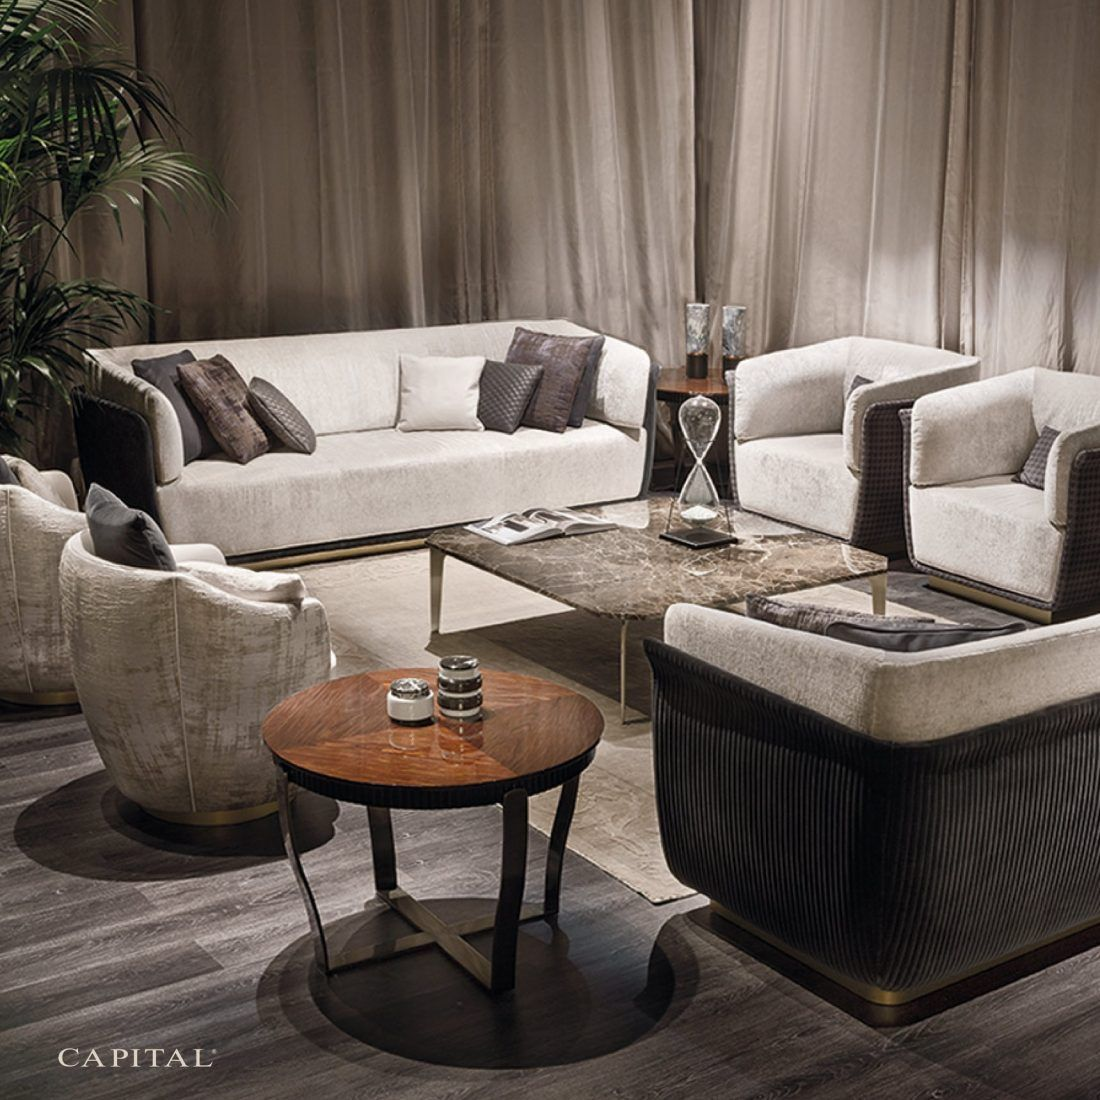 CAPITAL COLLECTION: Soft and elegance presence by ...